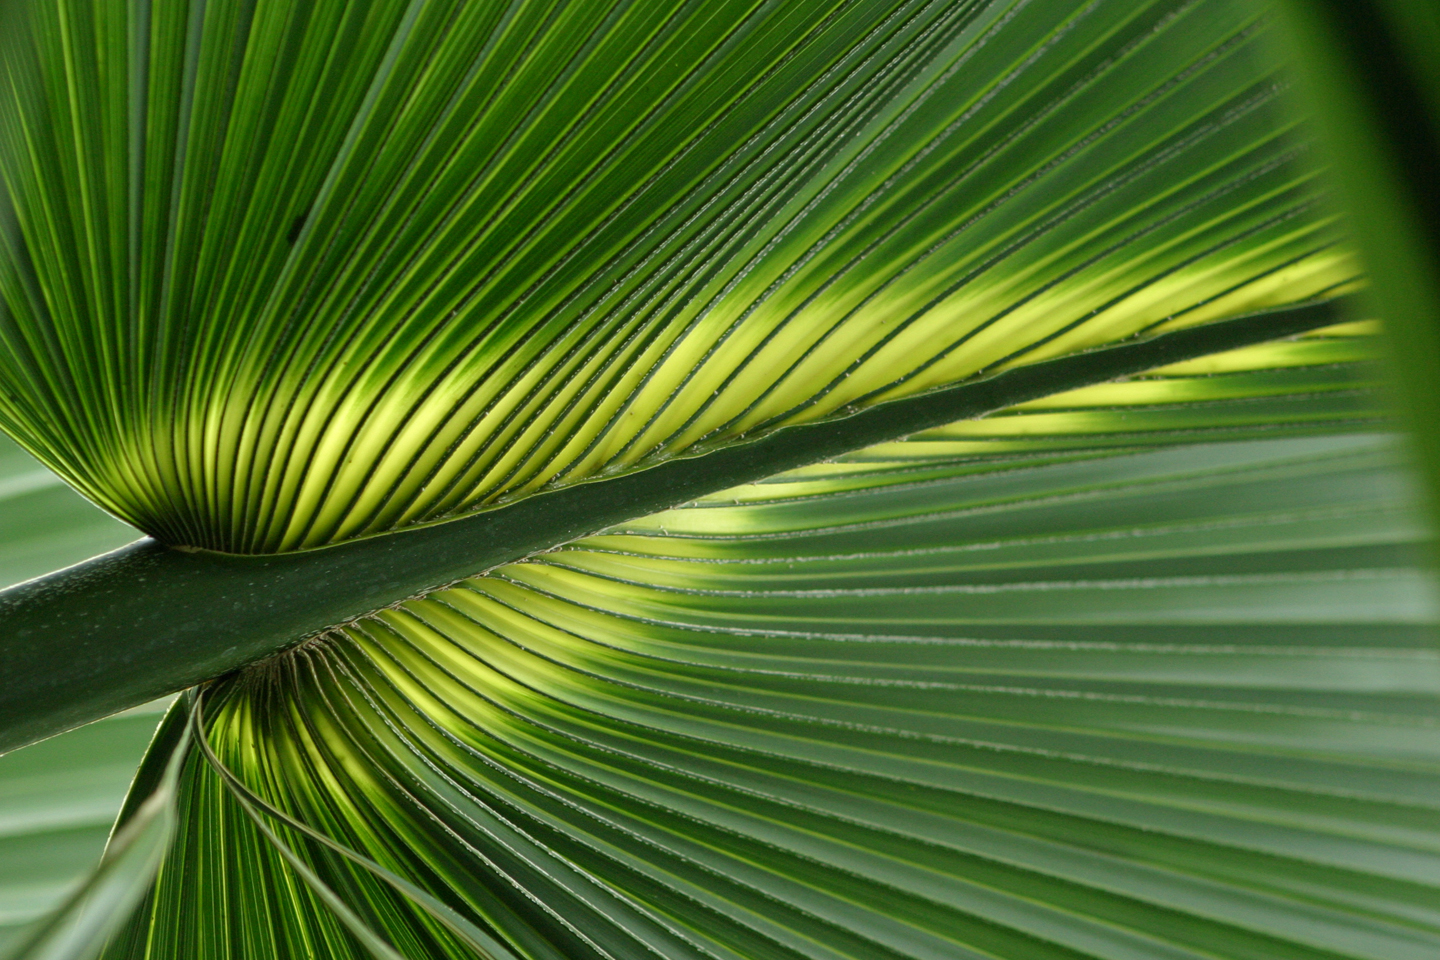 Tropical Leaf Desktop and mobile wallpaper Wallippo 1440x960